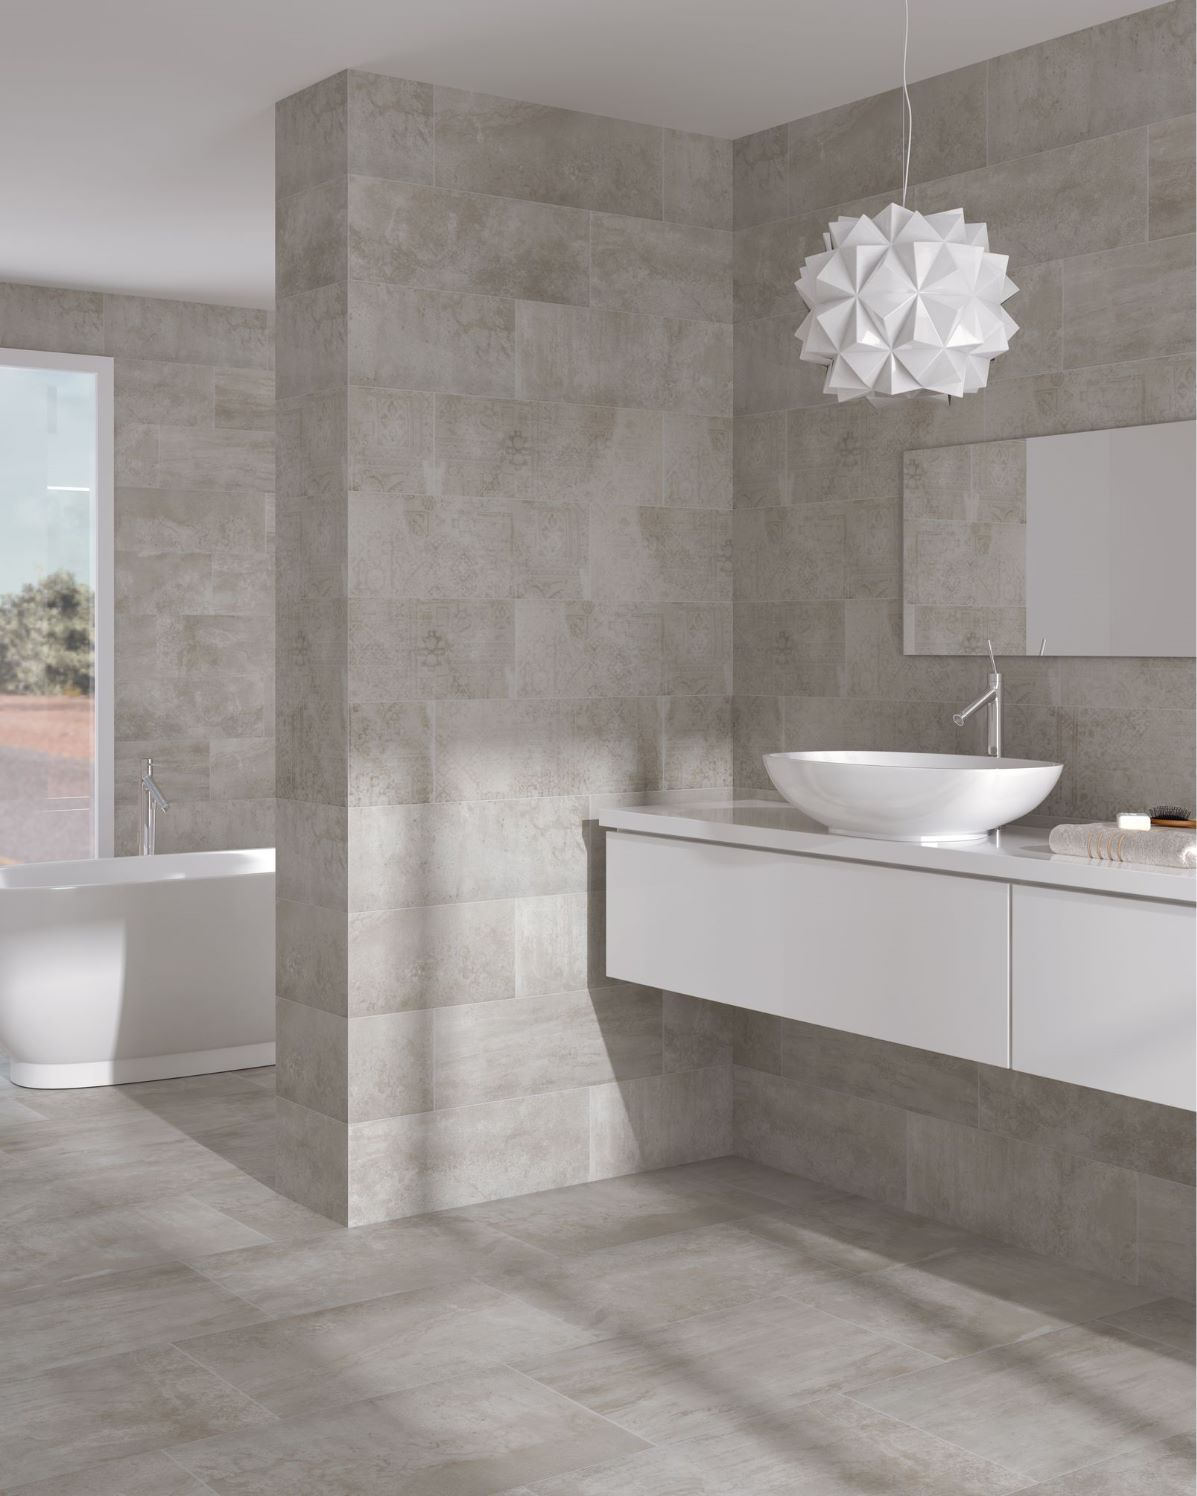 bathroom tile / floor / porcelain stoneware / satin - concrete